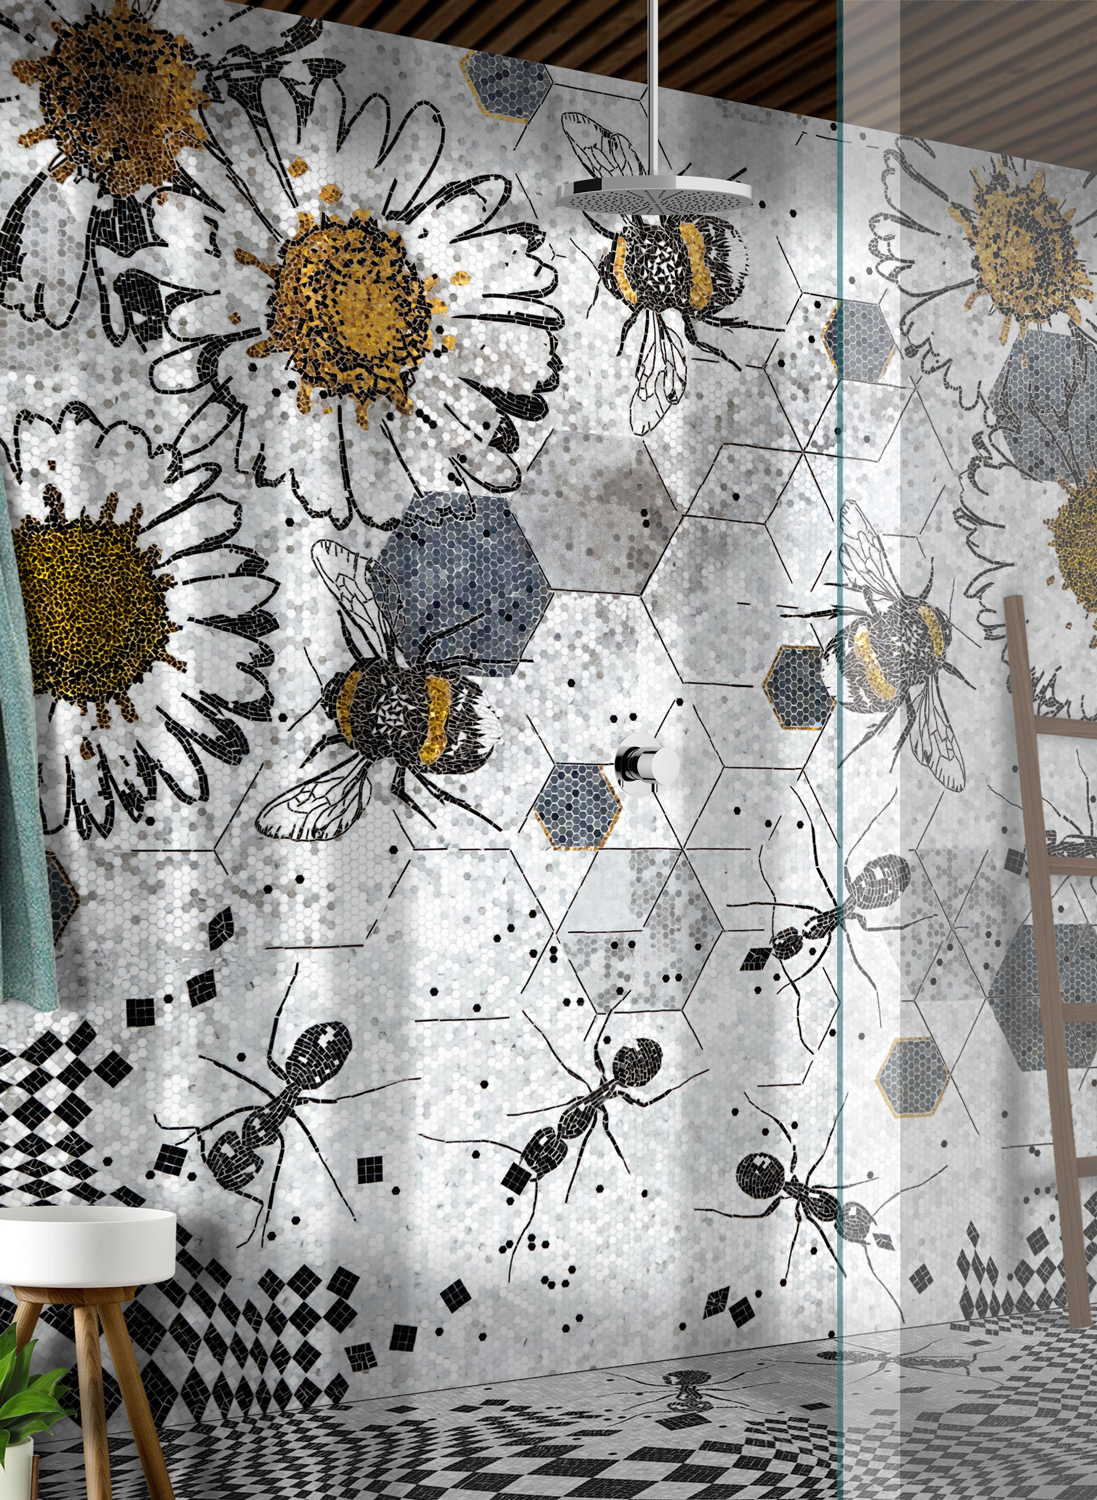 LITHOS-MOSAICO-ITALIA-BEES-design-Andrea-Mighali ANTS & BEES